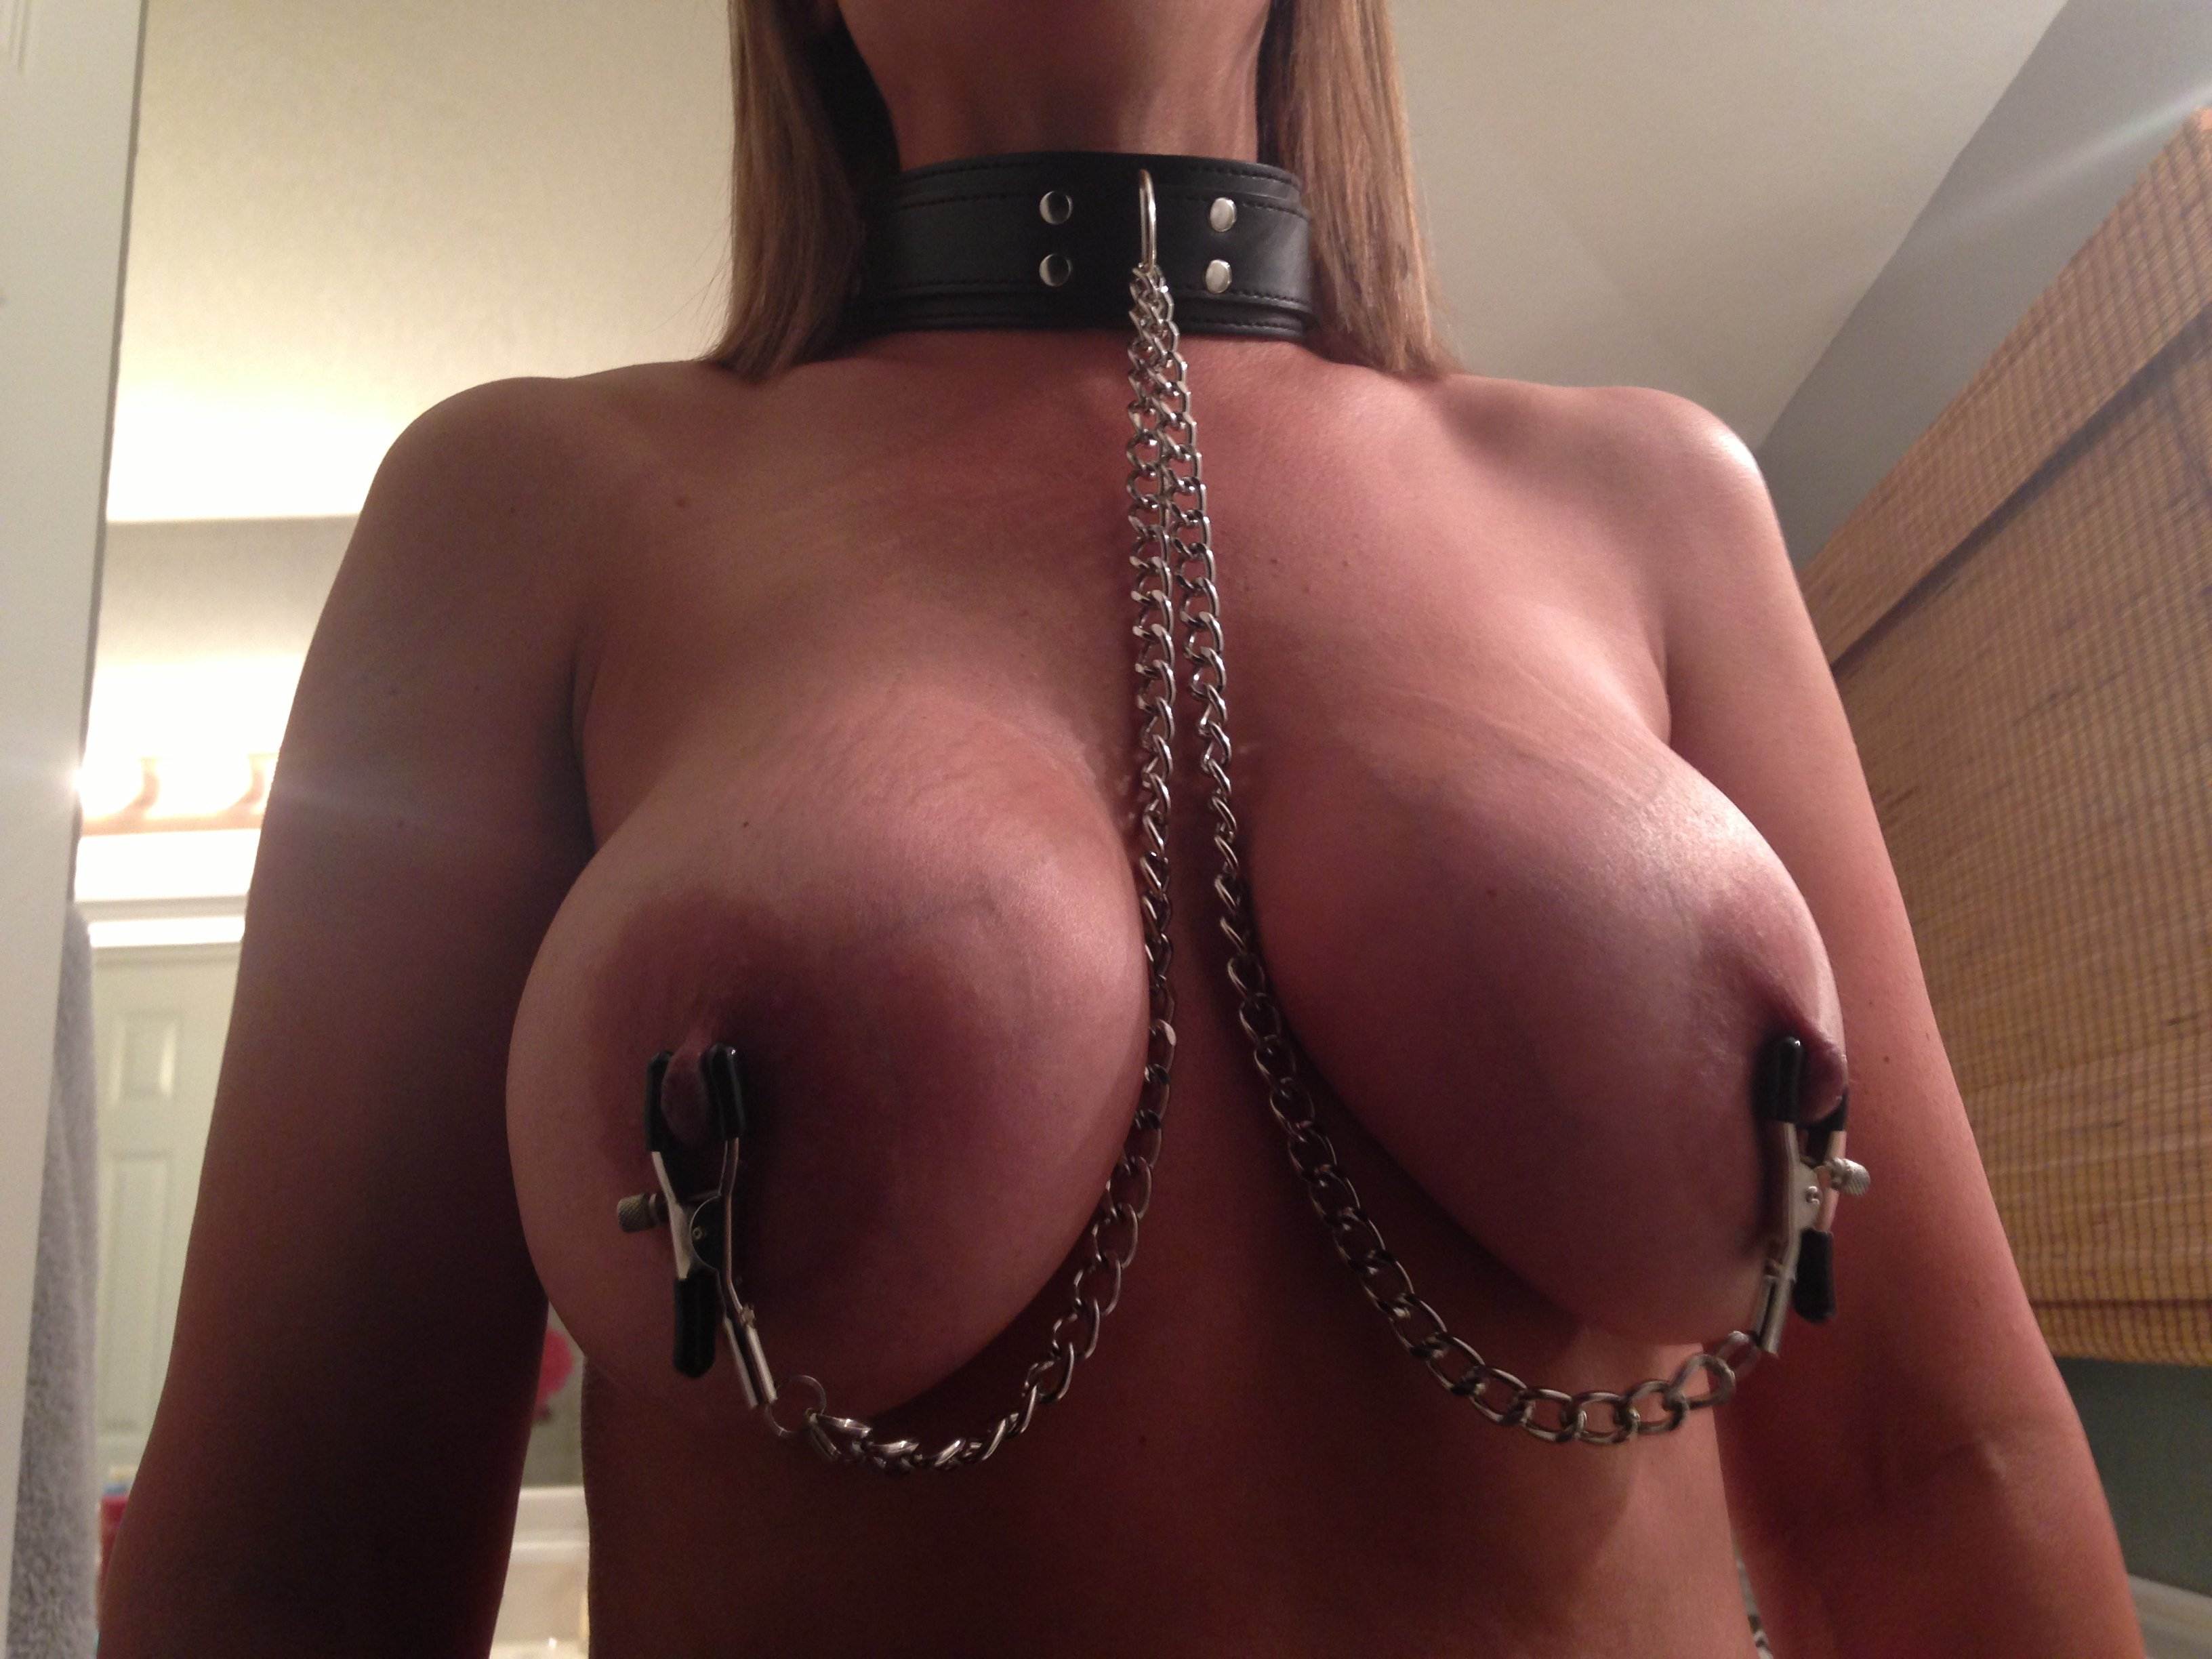 Nipple clamps in public